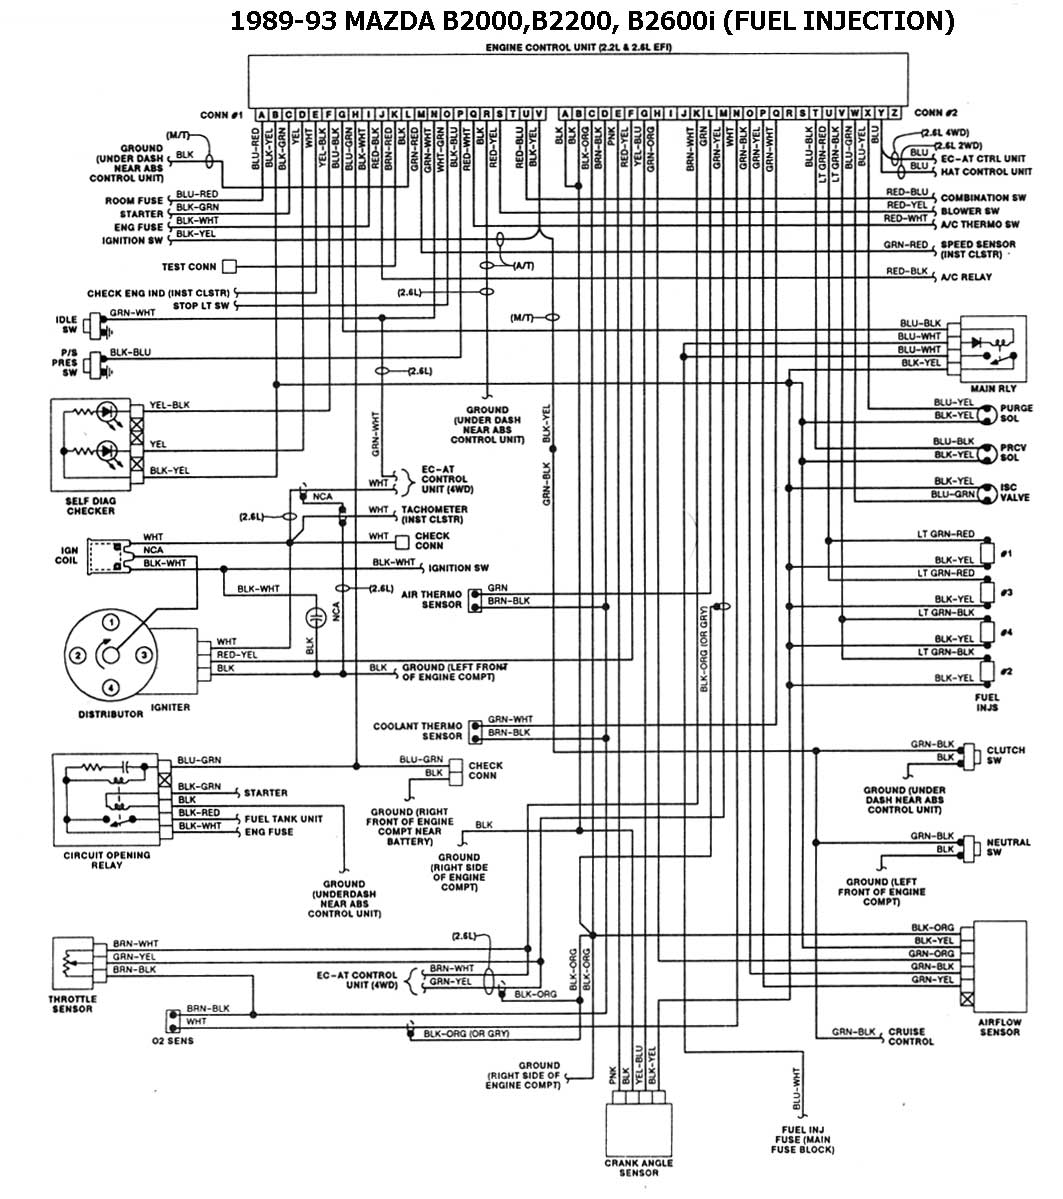 93 Ford Ranger Radio Wiring Diagram also 2010 Ford Escape Tail Light Wiring Diagram likewise 1984 Ford F250 Fuse Box Diagram also Esqmzd001 in addition 2006 Mustang Front Suspension Diagram. on 2001 f250 fuse box diagram